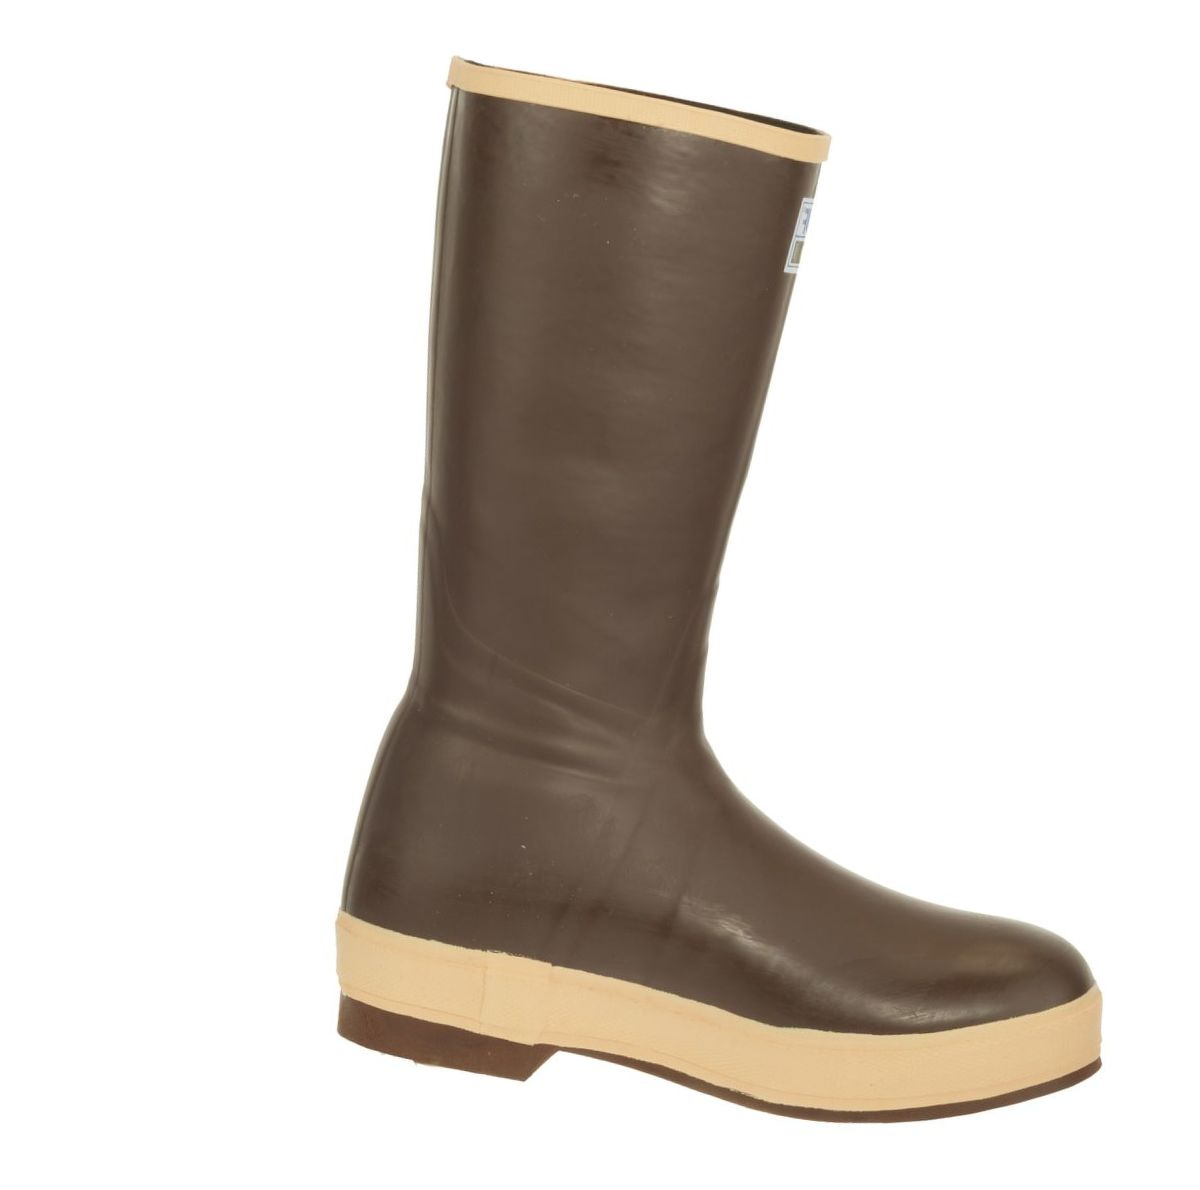 Xtratuf® Insulated Rubber Boots